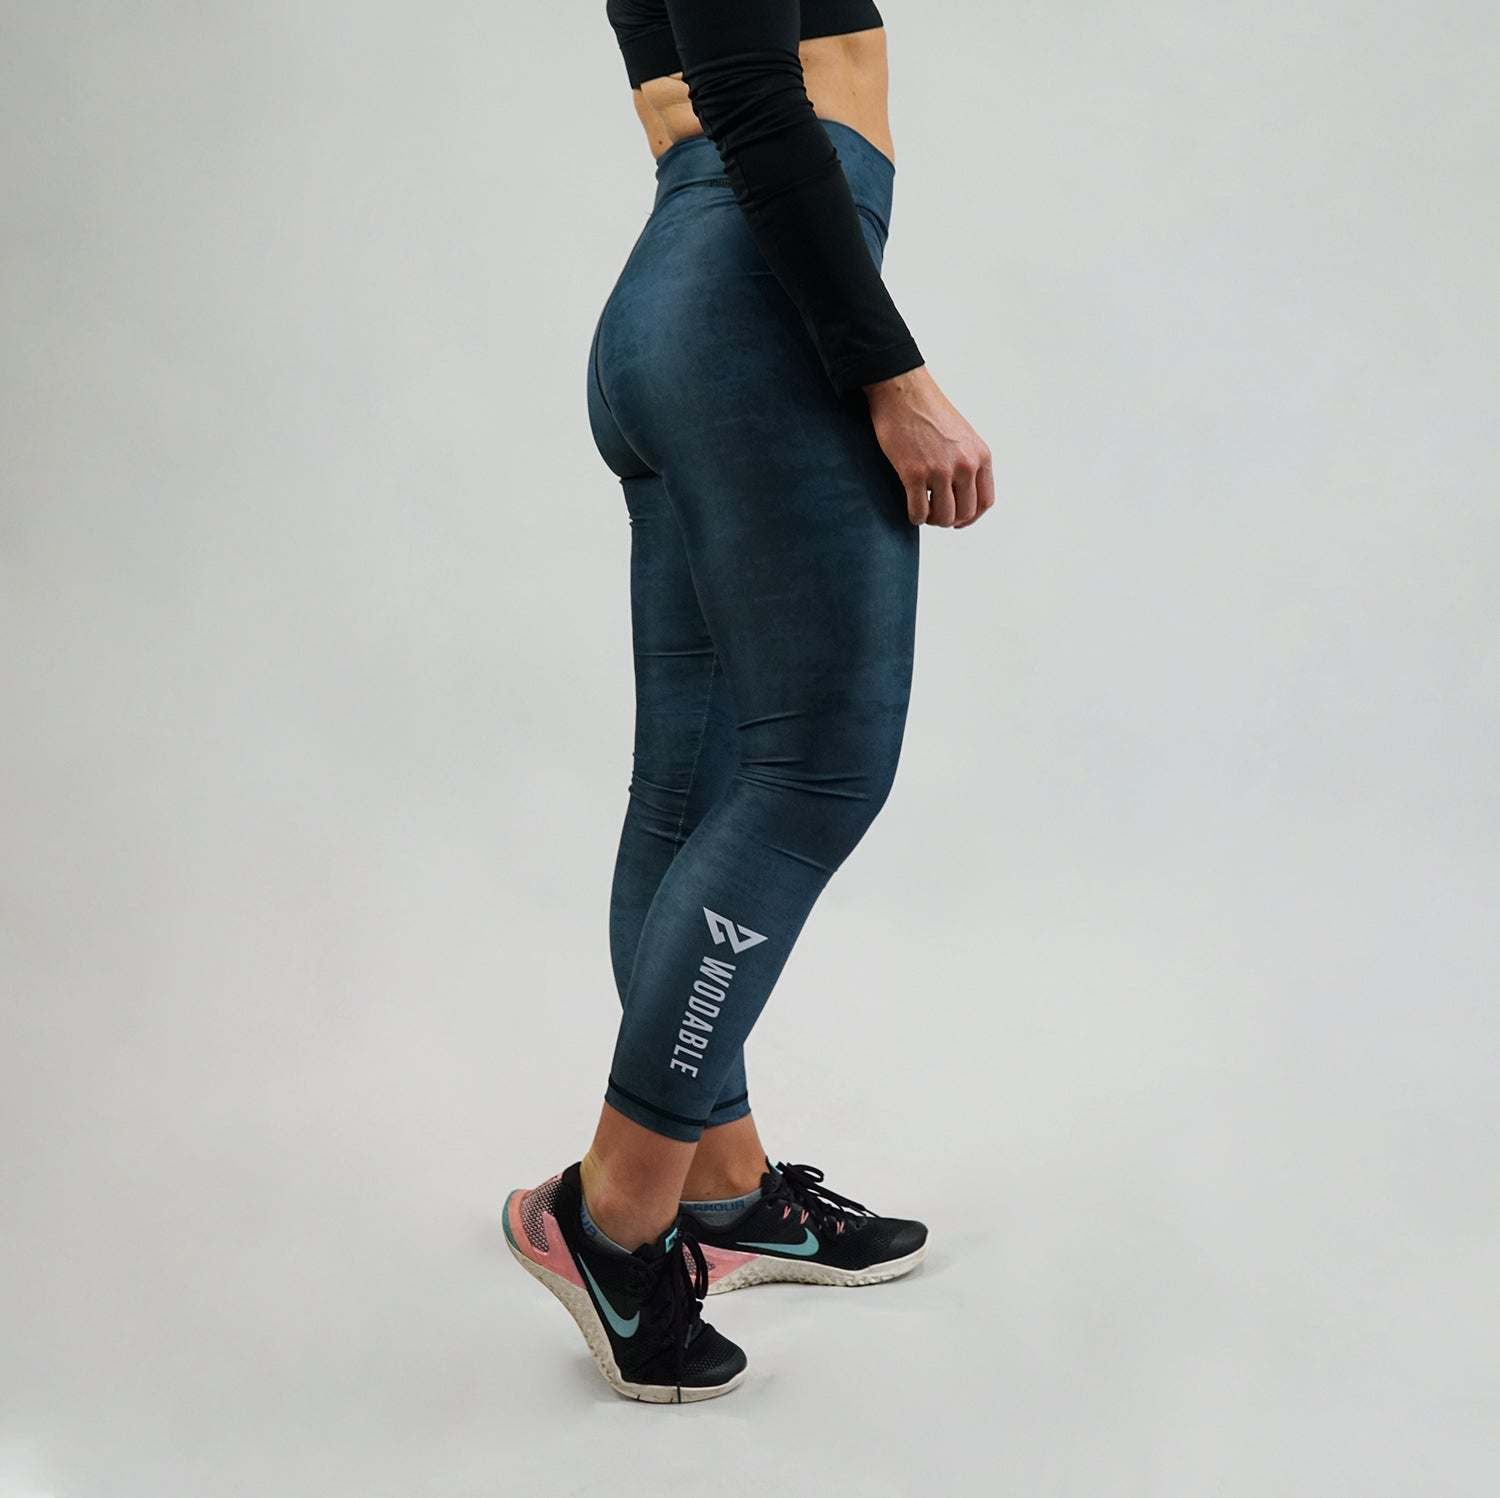 Form Leggings - Teal